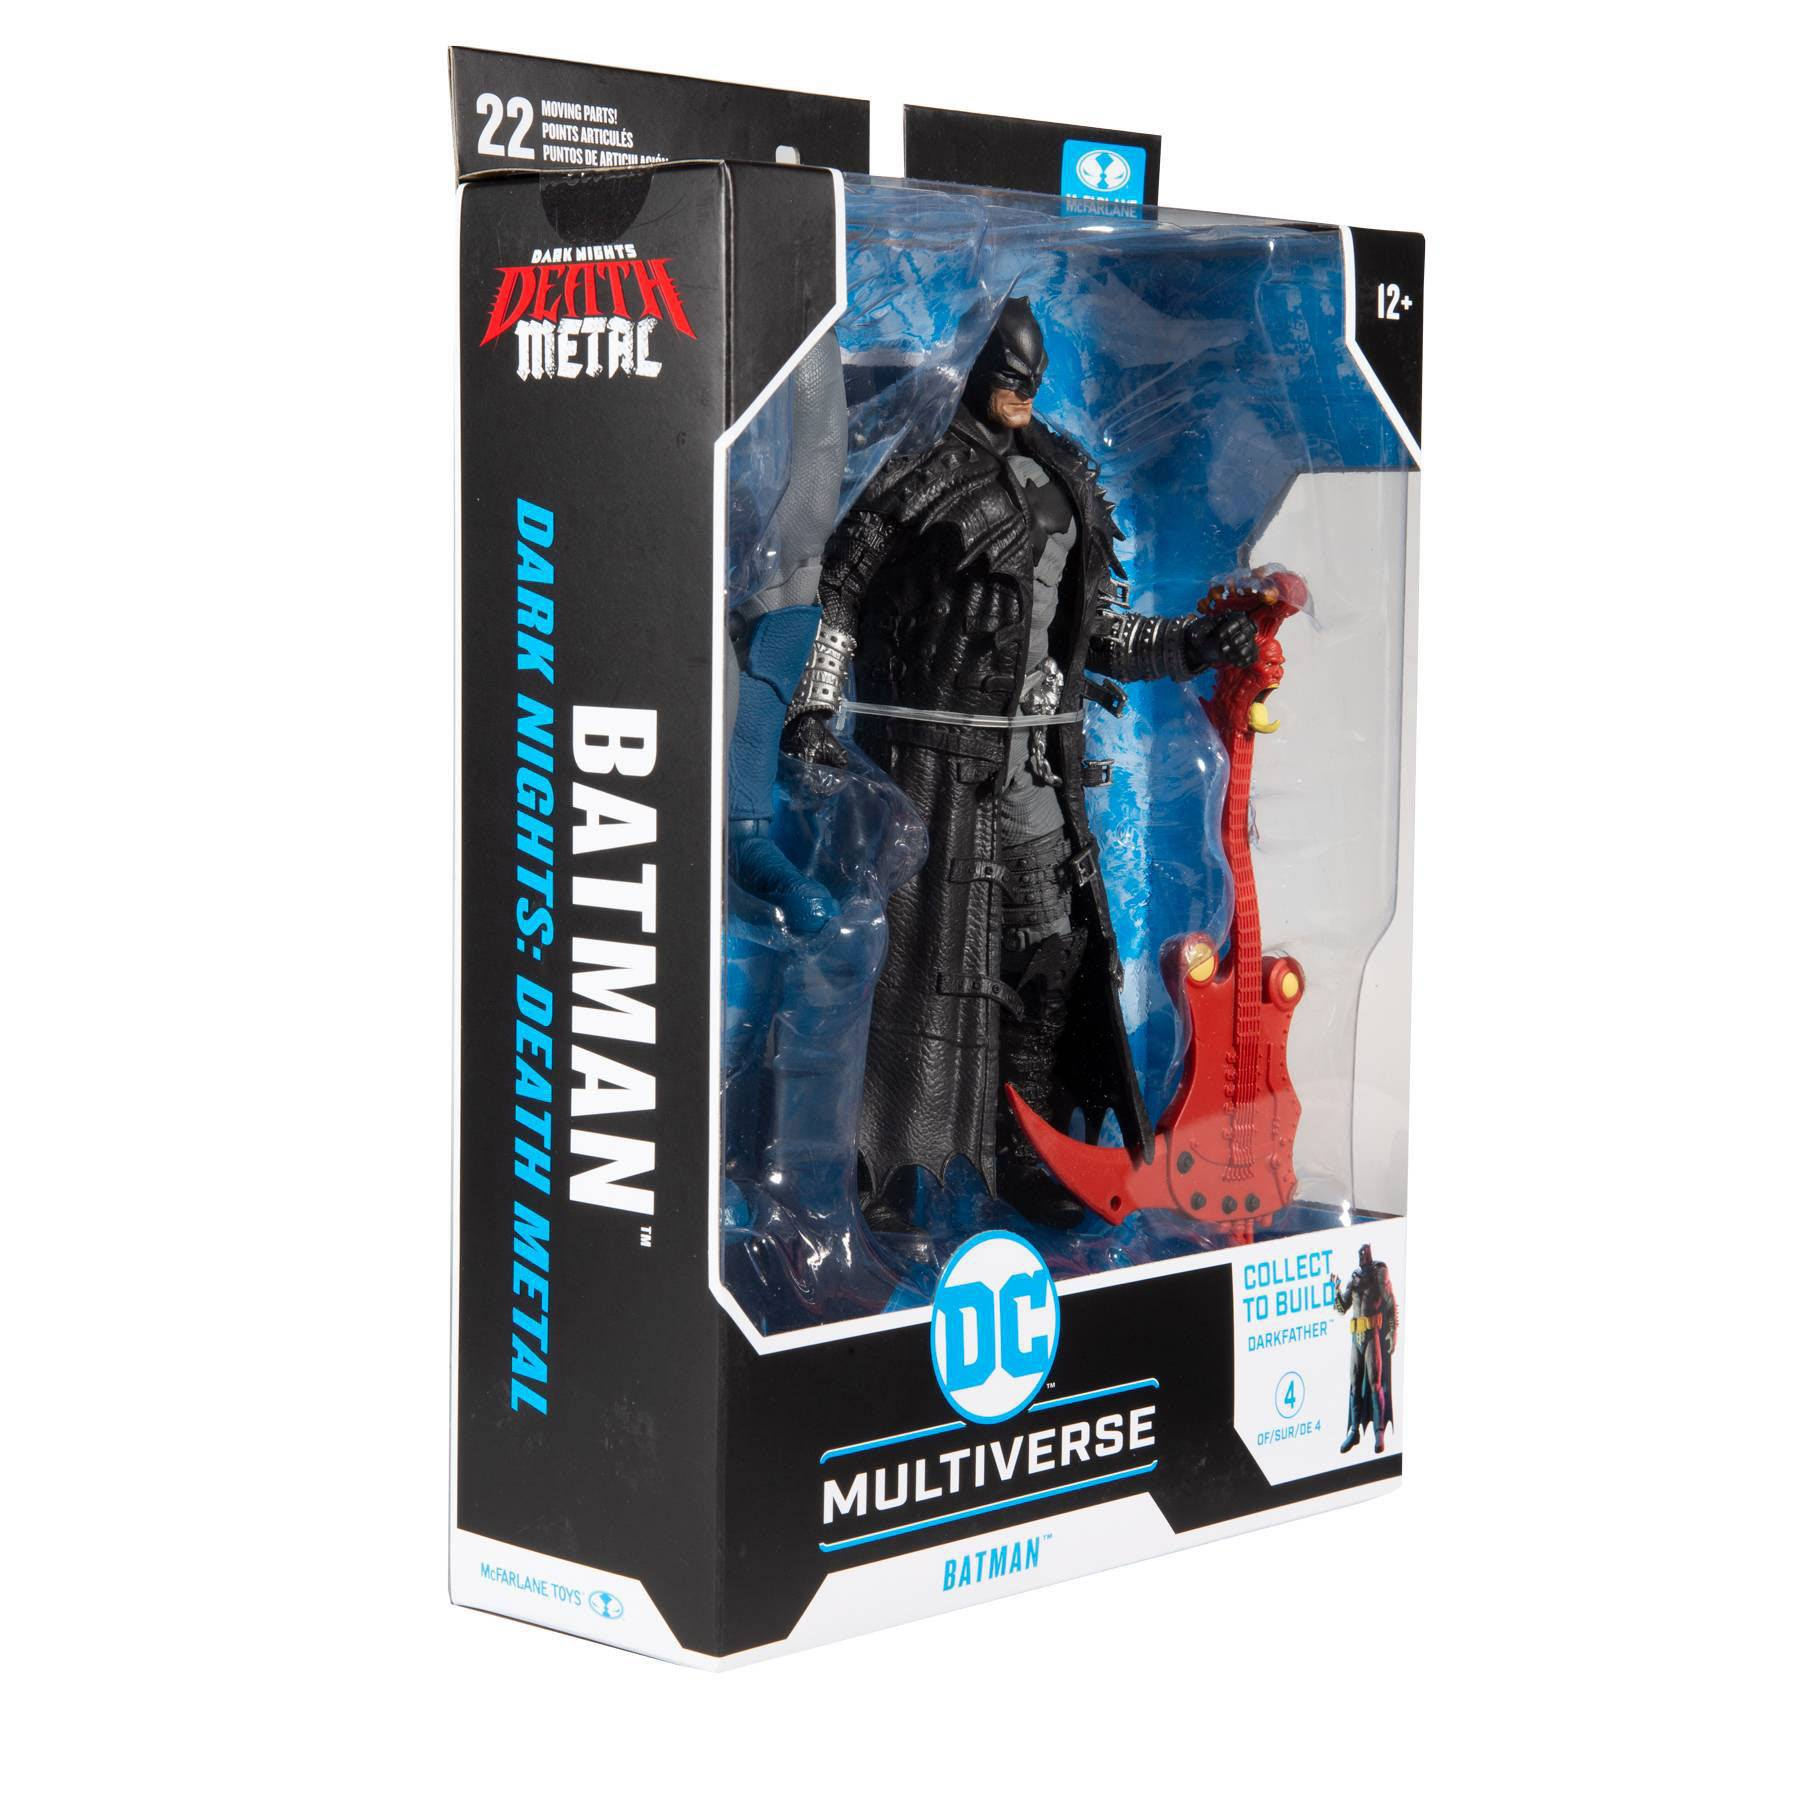 DC Multiverse Build A Actionfigur Batman 18 cm MCF15416-0 787926154160